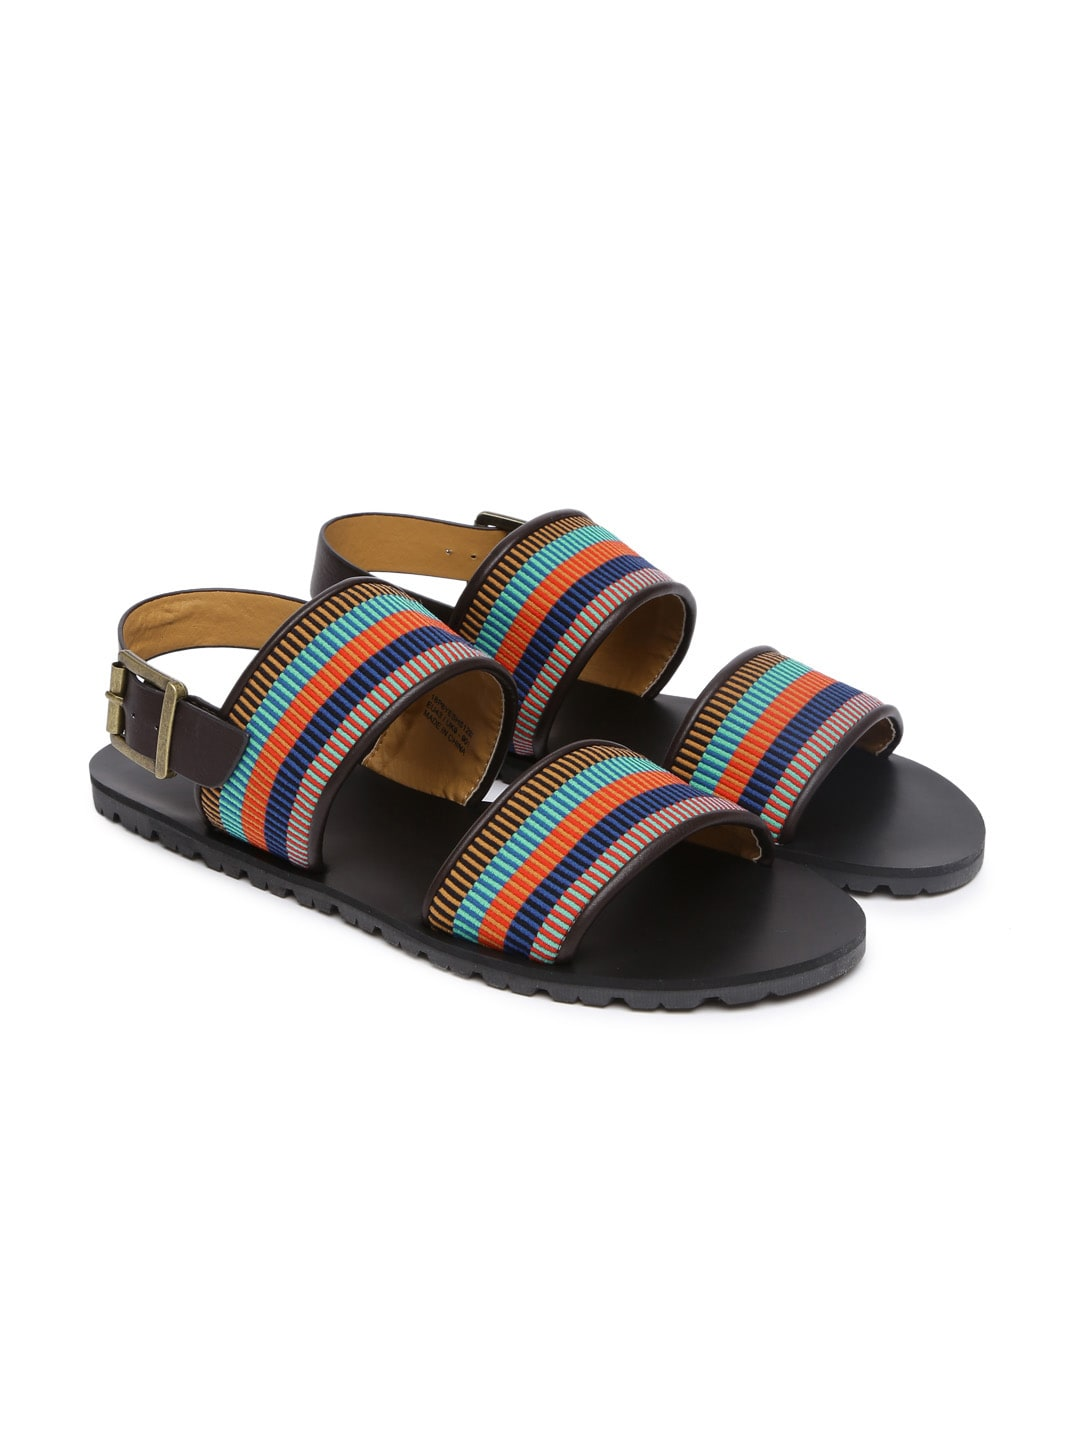 199d7fd8d Sandals - Buy Sandals Online for Men   Women in India